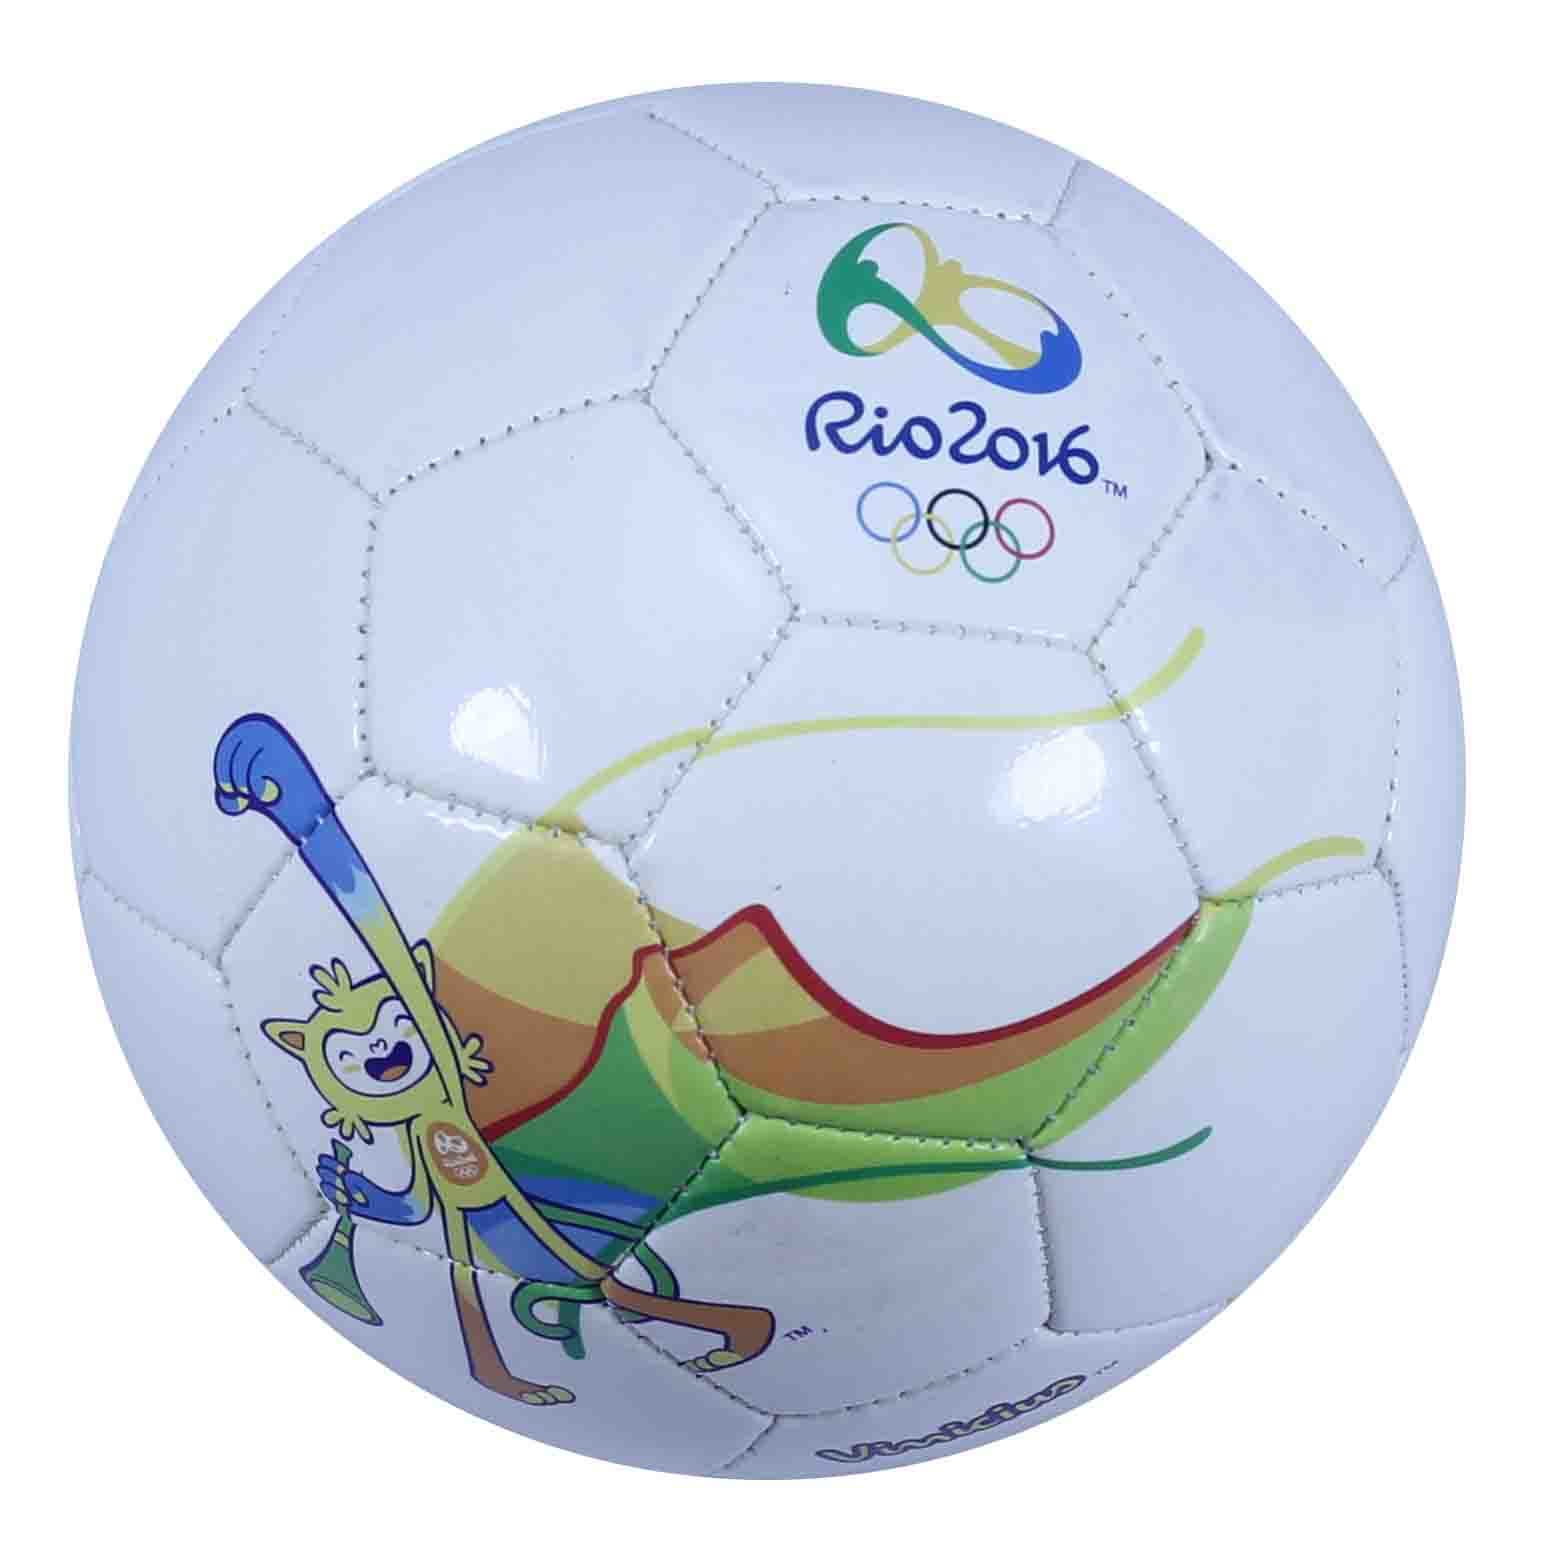 2016 Olympic Game Ball of Soccer Ball